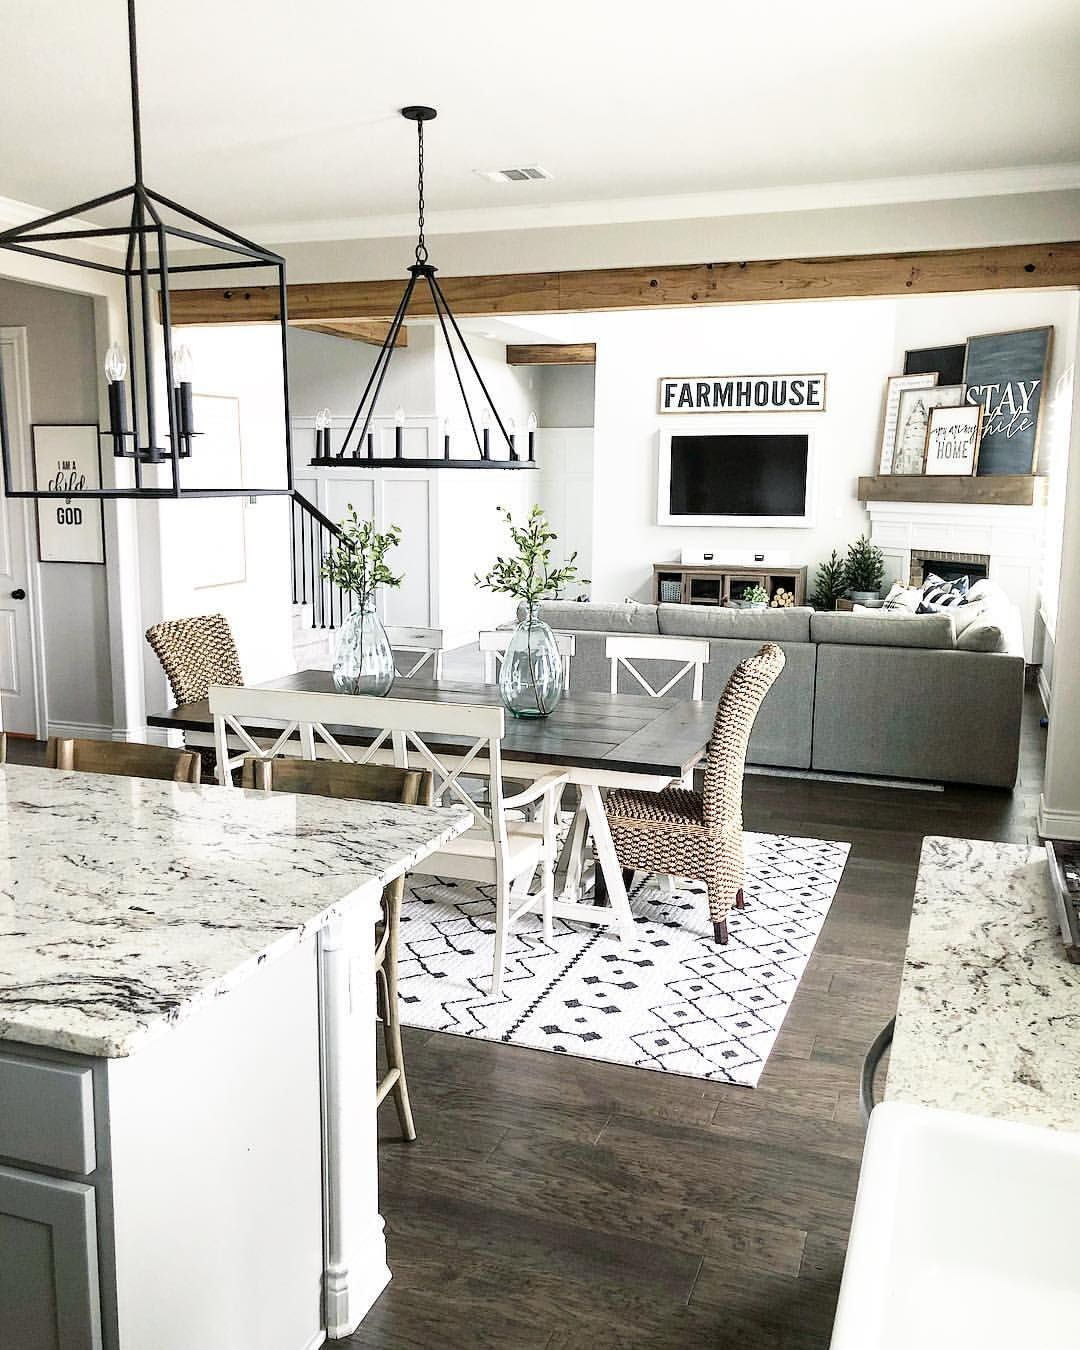 Farmhouse Style Open Layout With Kitchen, Dining Room And